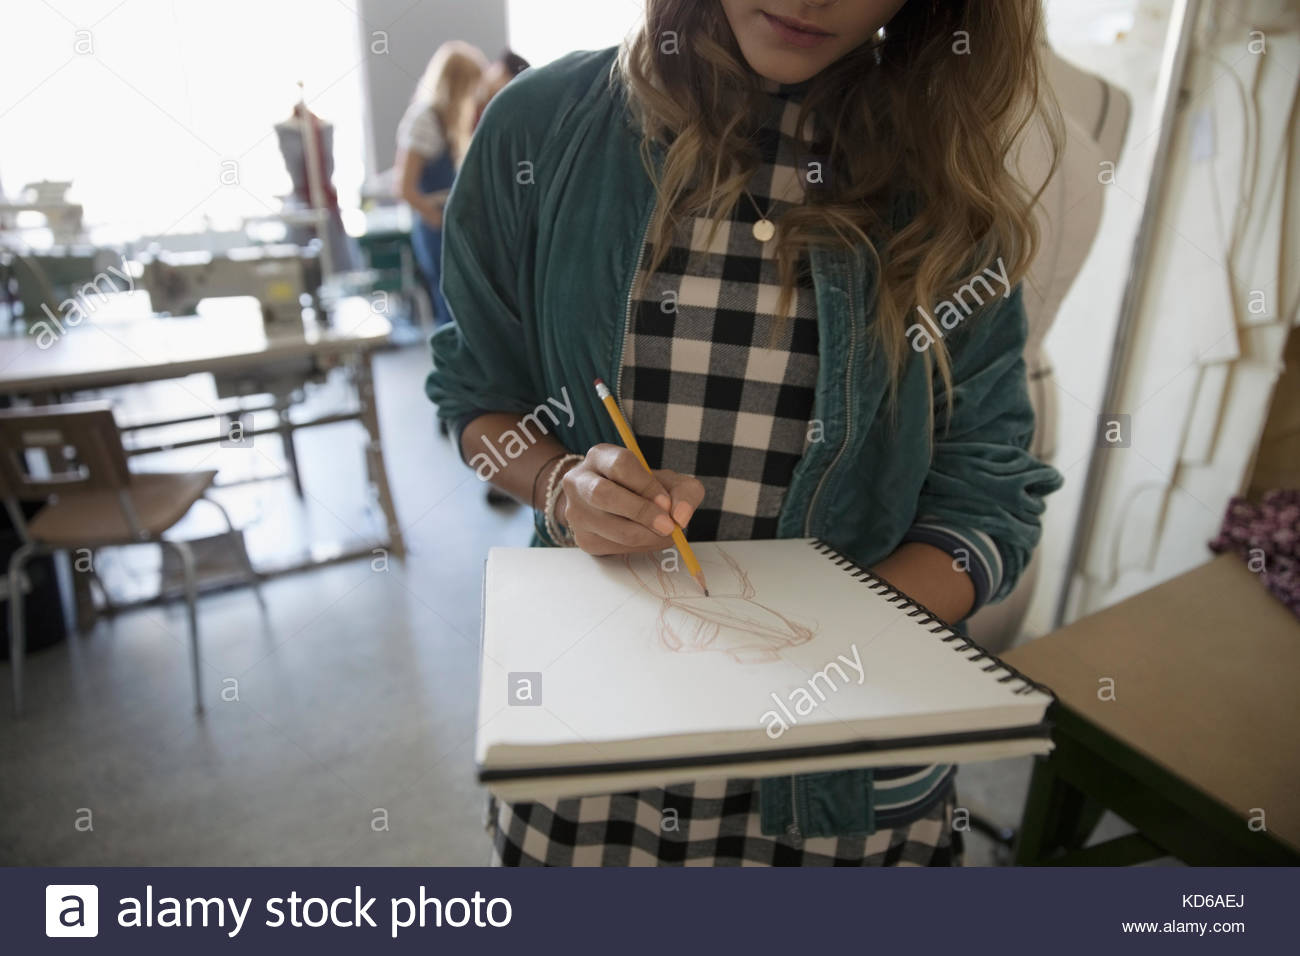 Female fashion design student sketching in notebook - Stock Image